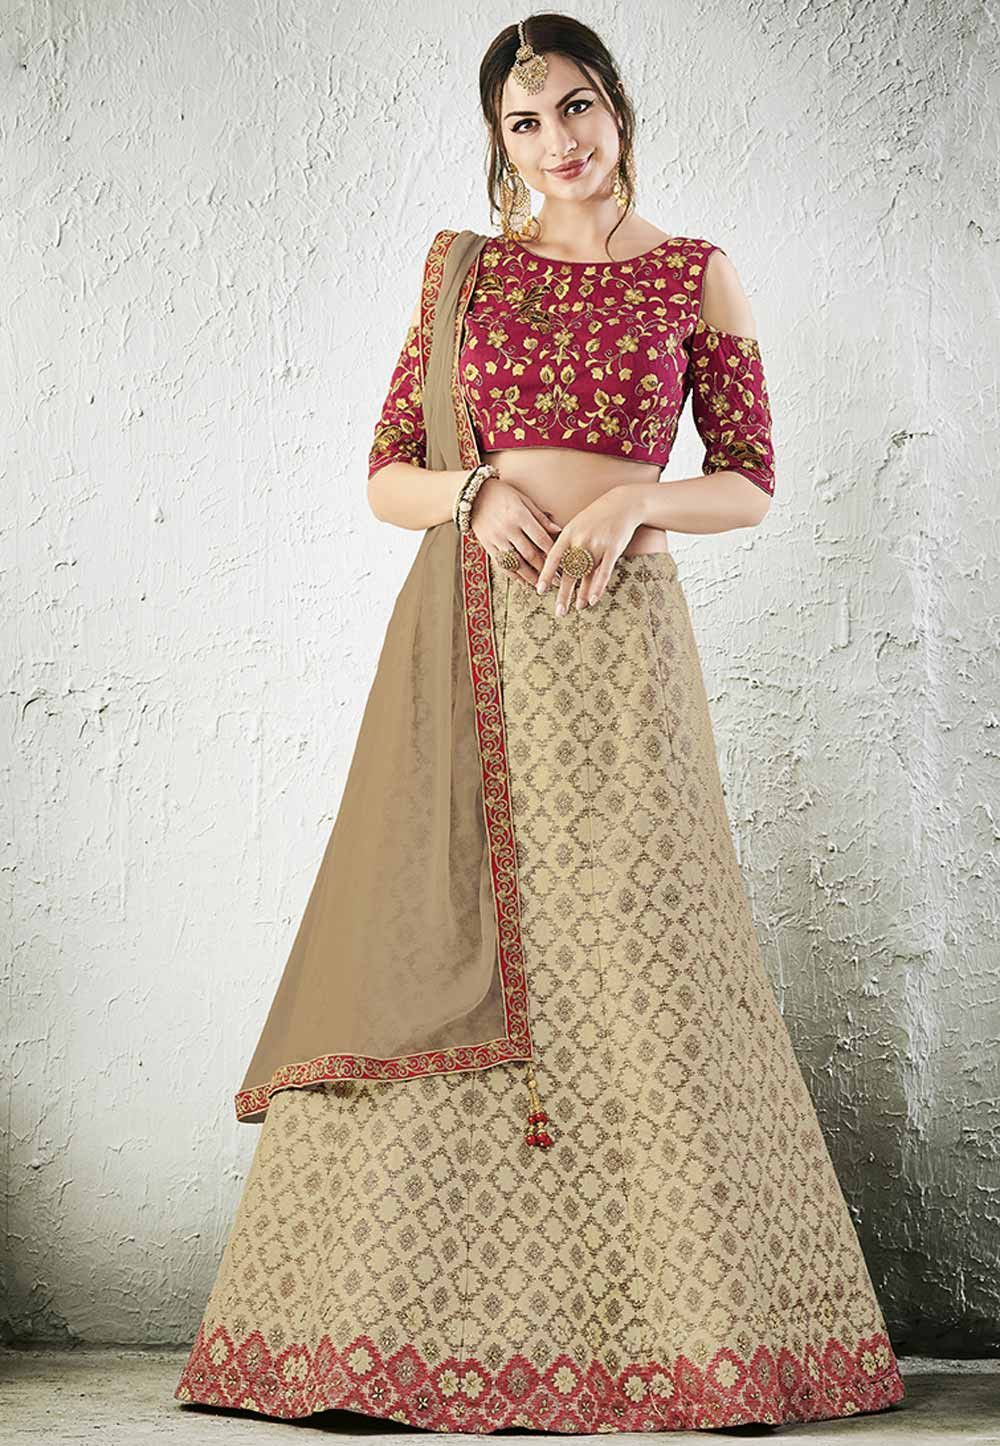 ffc48c6872b Buy latest wedding lehenga online at competitive prices in India from the  best ethnic wear collections. Also